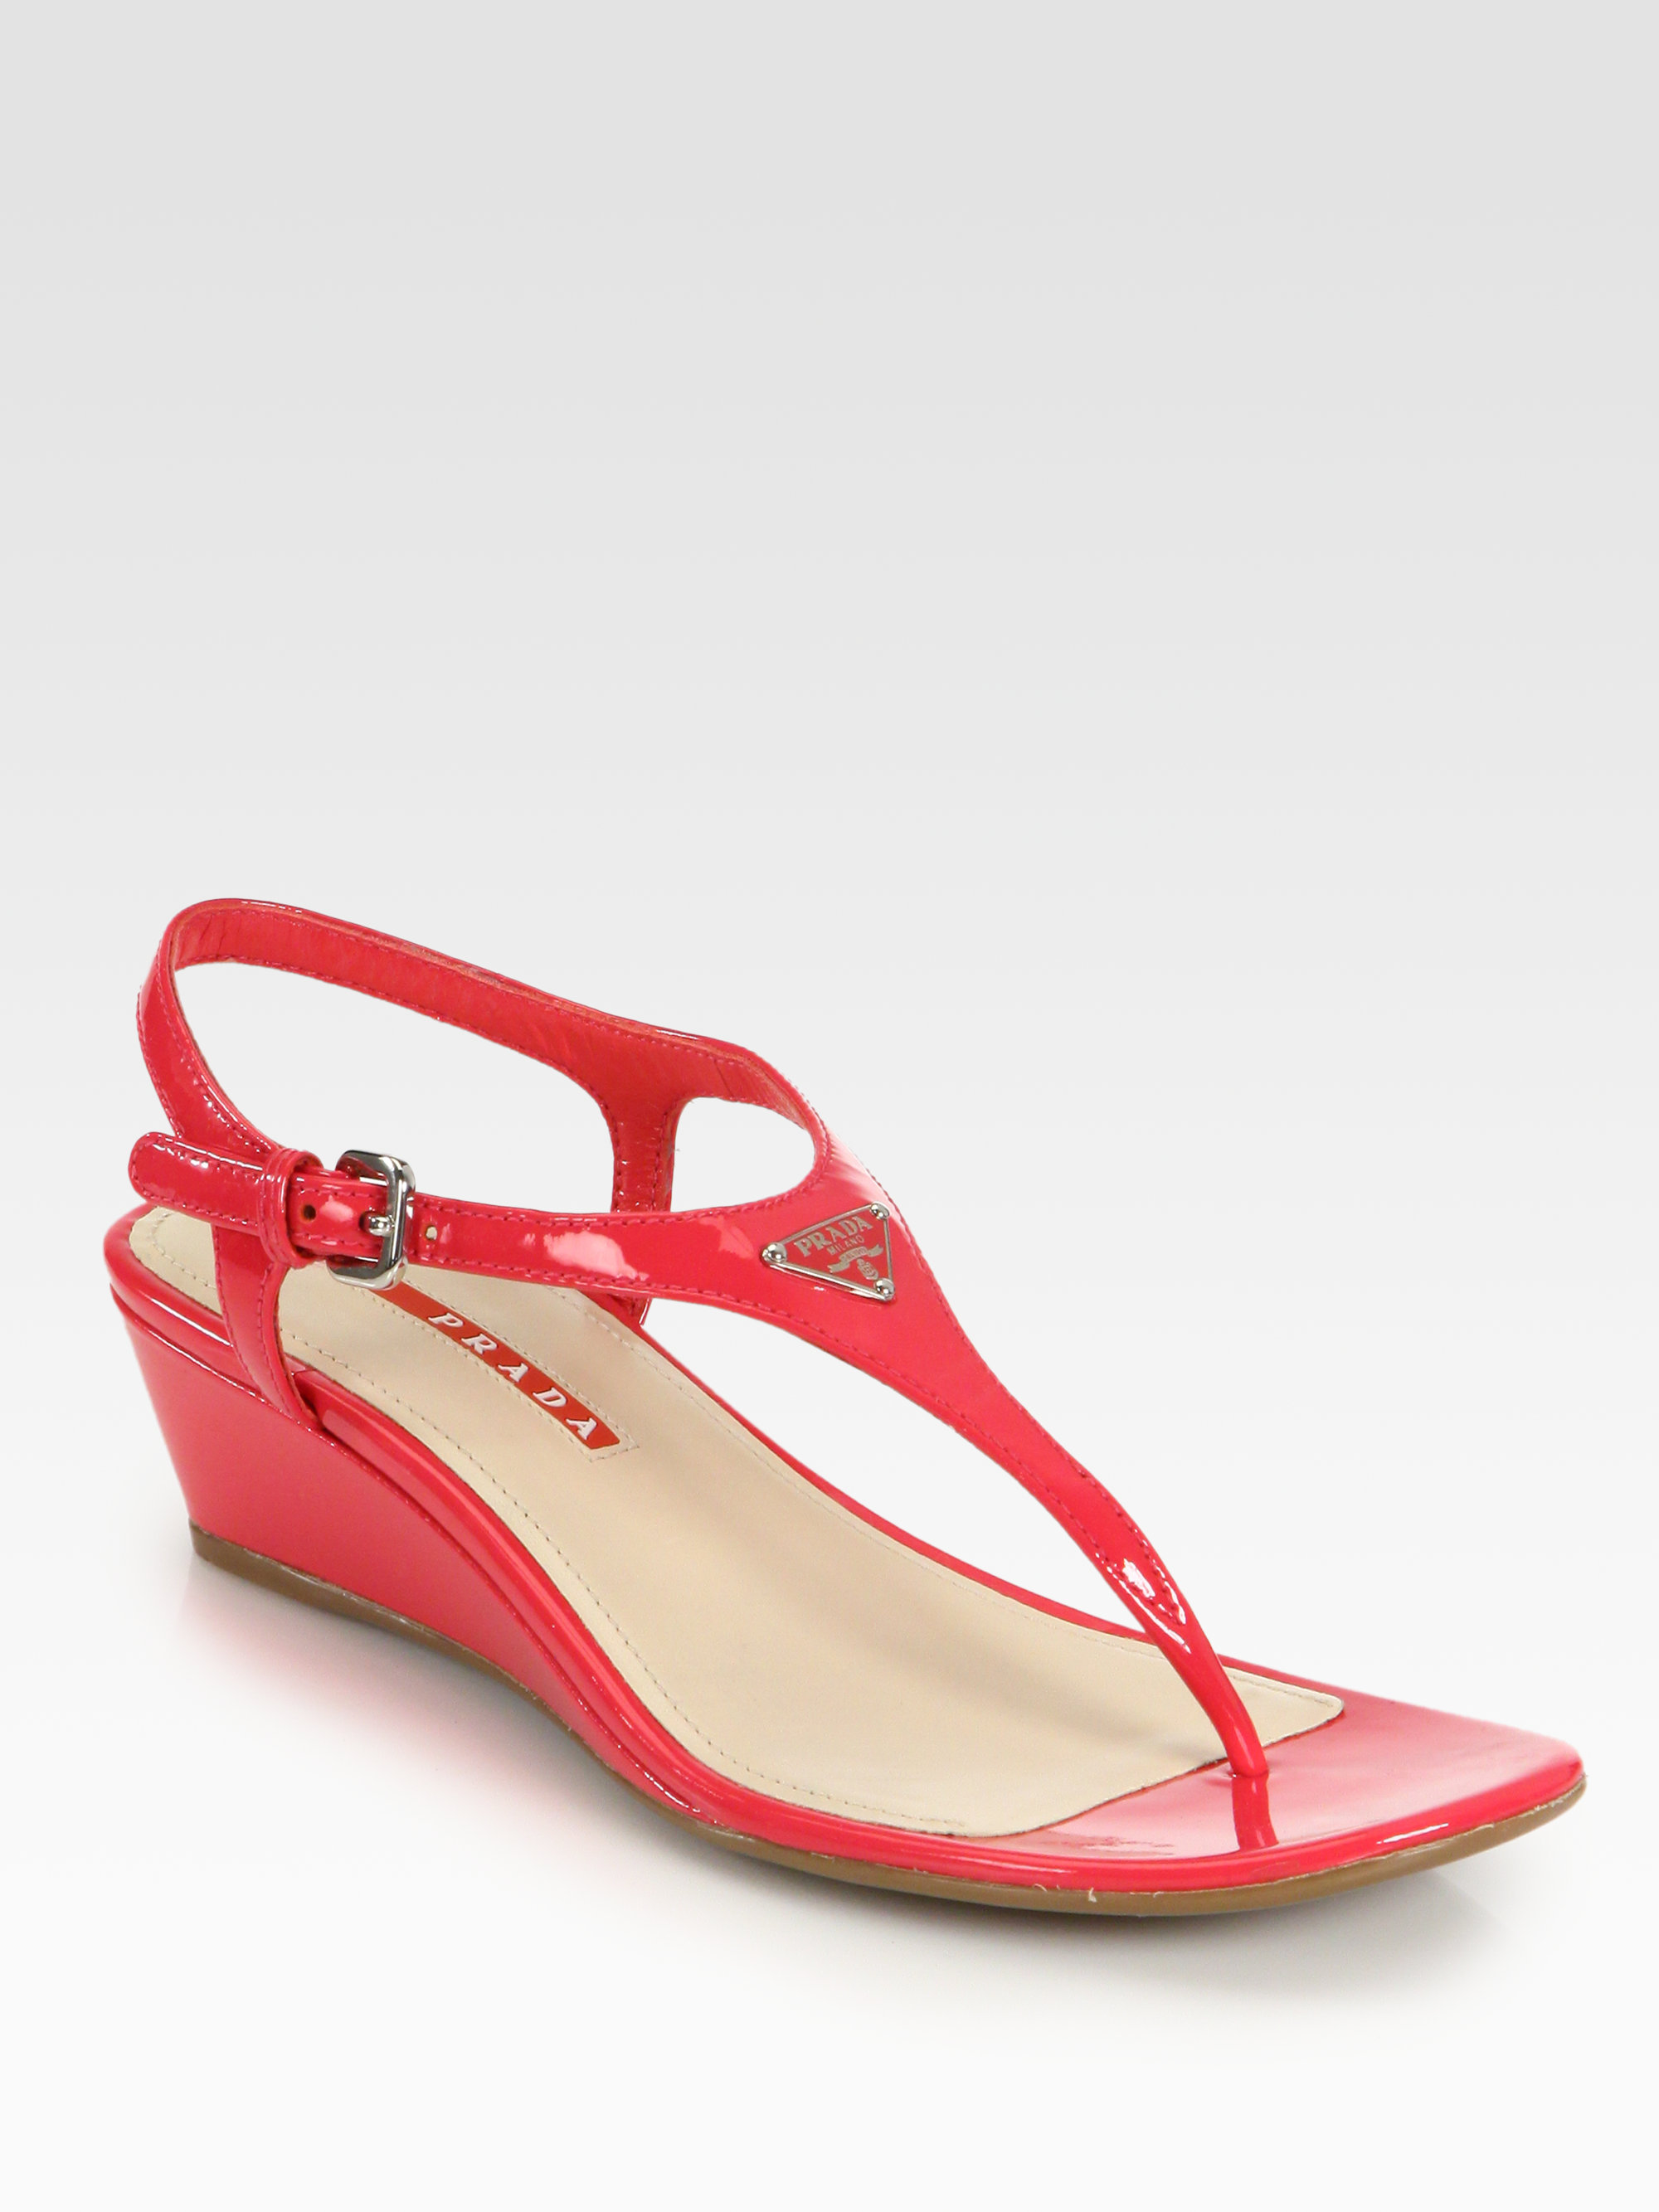 43716e044 Lyst - Prada Patent Leather Thong Wedge Sandals in Red